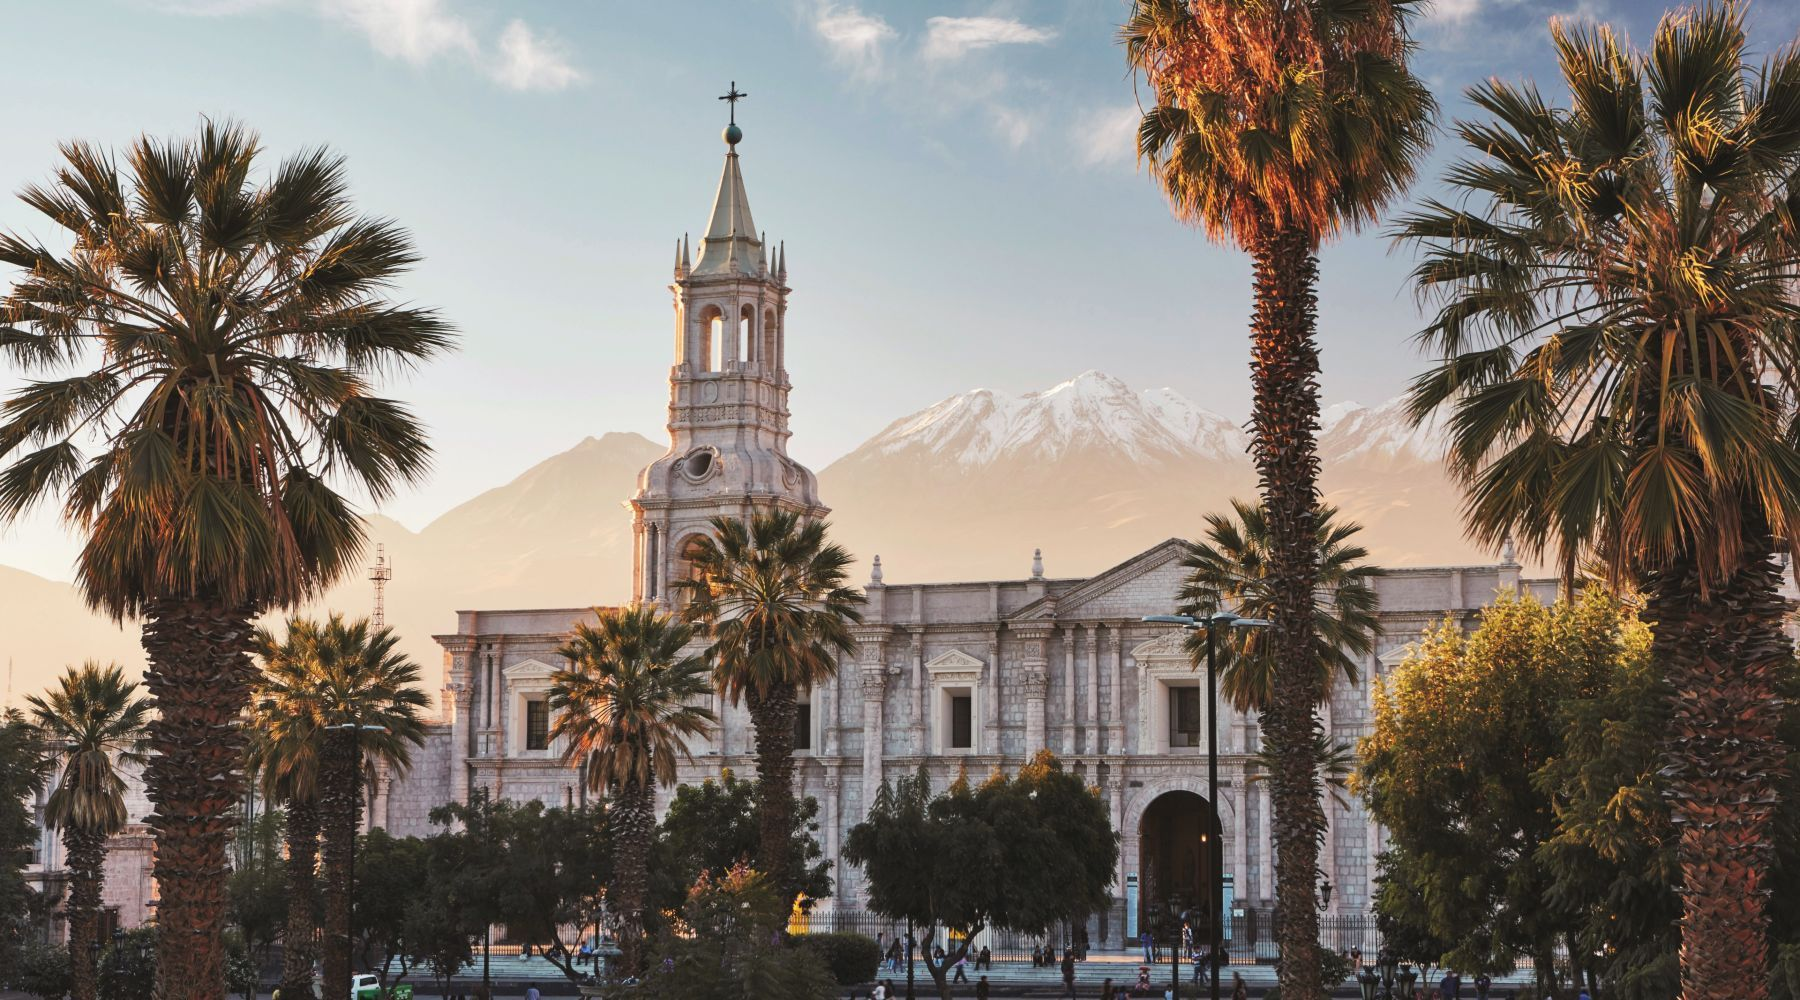 Arequipa's Cathedral in the Plaza de Armas